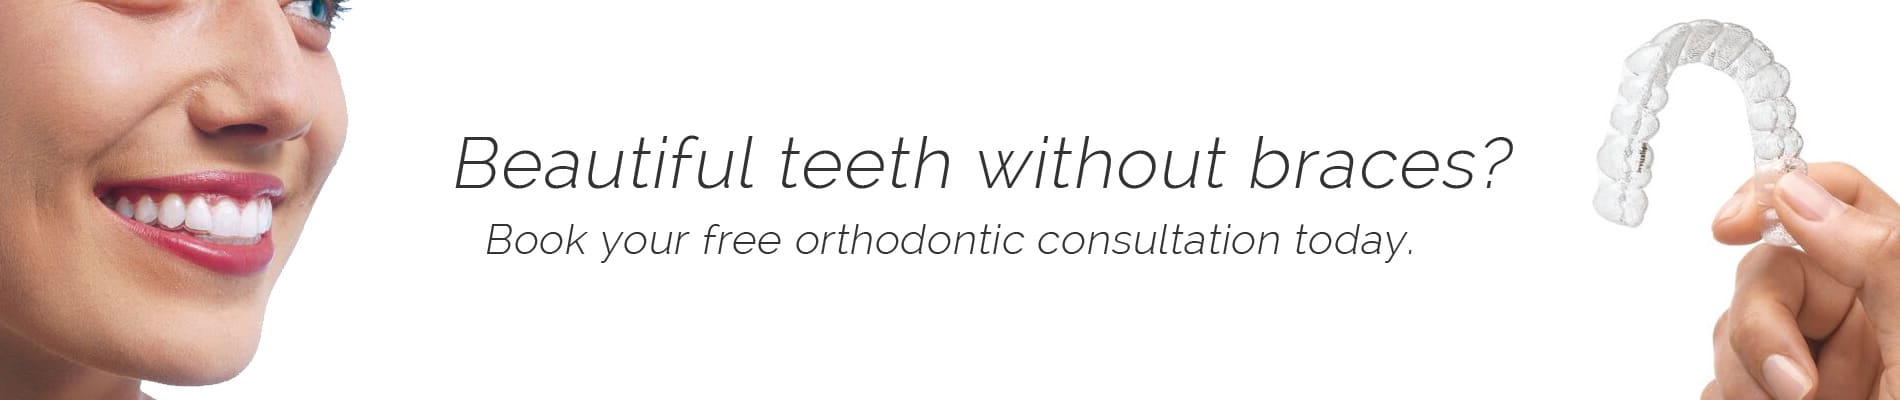 Invisalign at dhealth Dentistry Camberwell - Beautiful teeth without braces